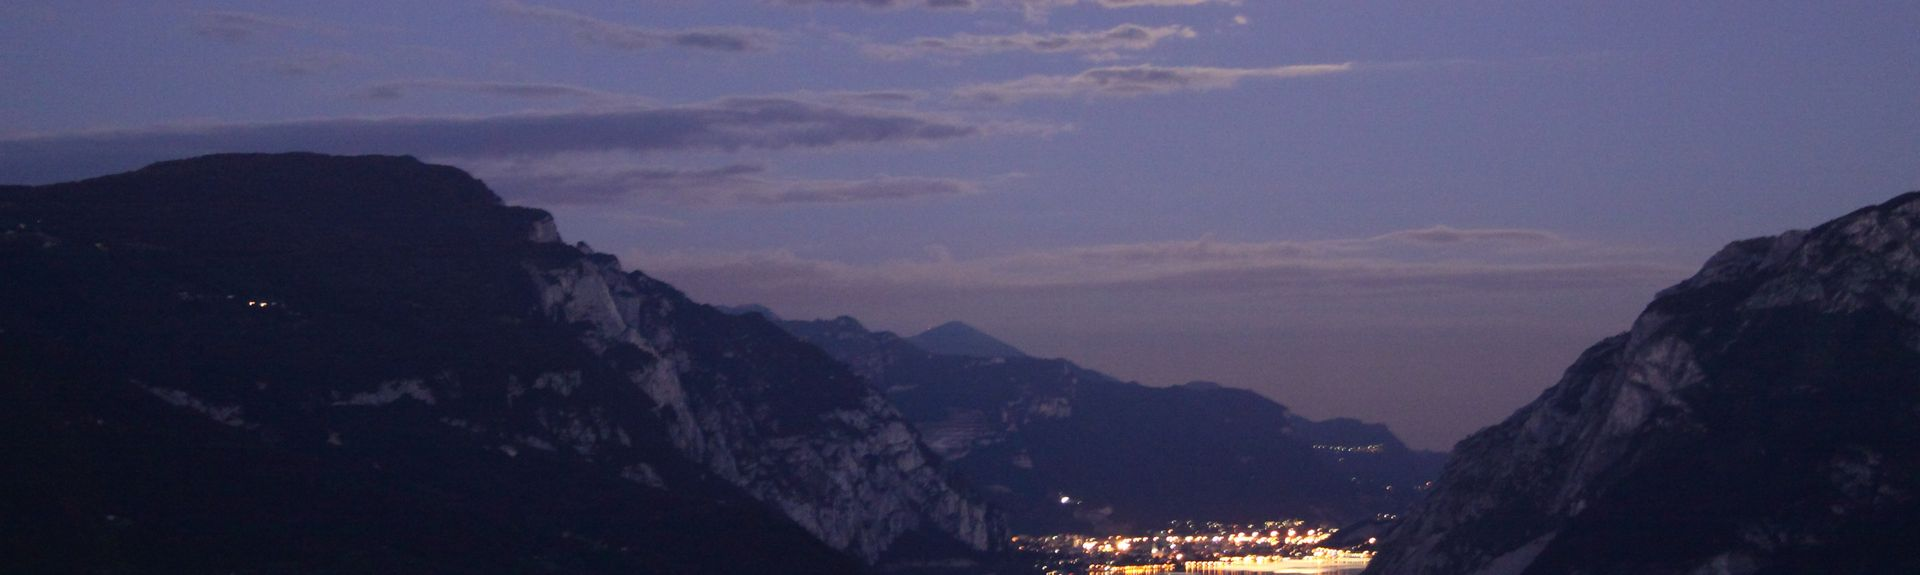 Casargo, Lecco, Lombardy, Italy